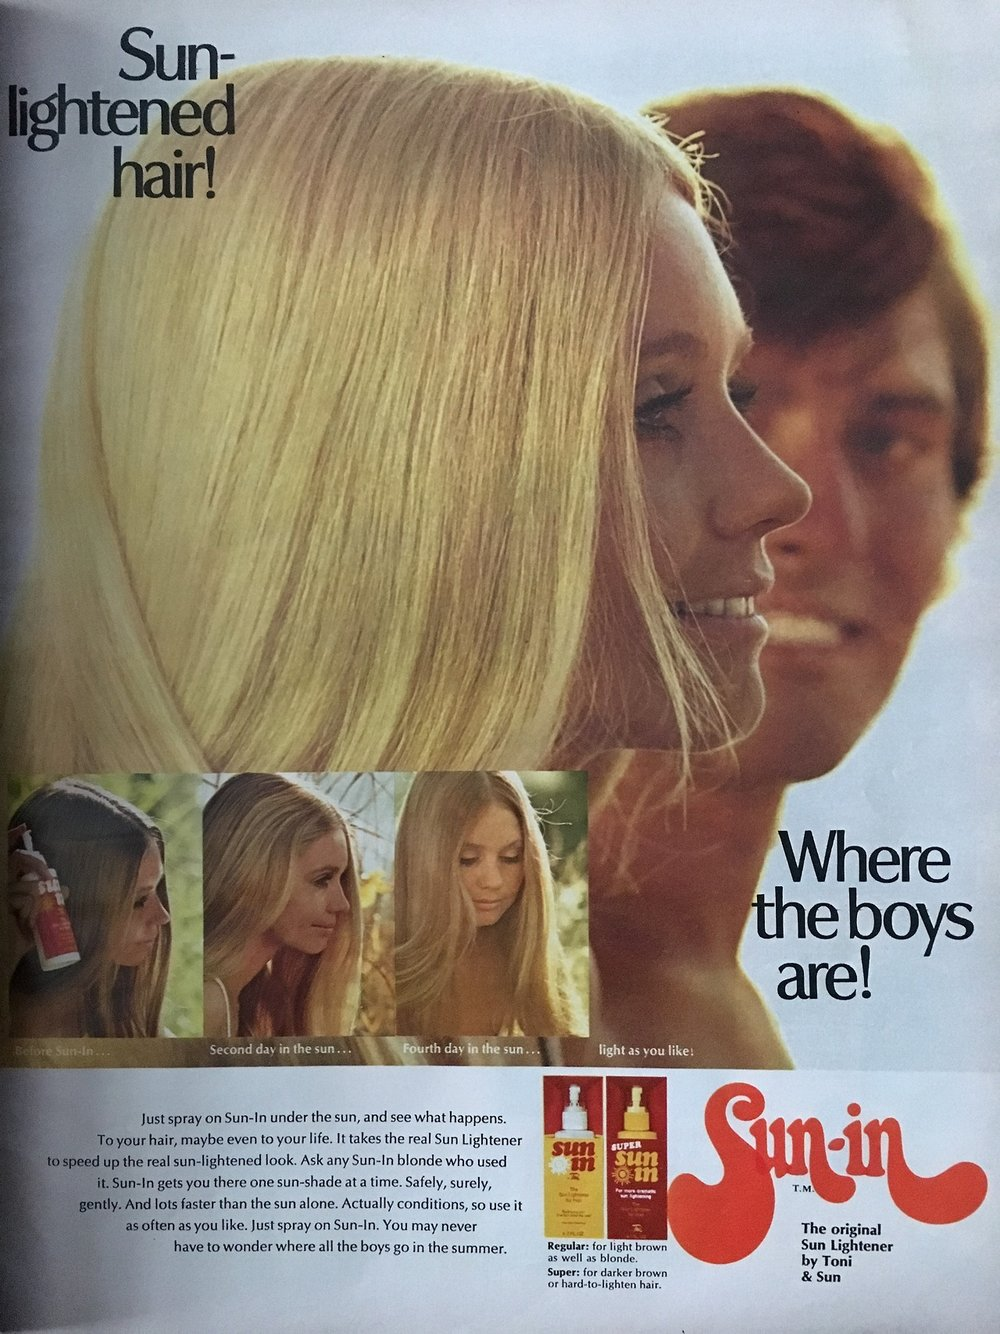 "periodicallyvintage""Sun lightened hairs- where the boys are!"" Sun-In Hair Lightener.    Seventeen Magazine. June 1971."